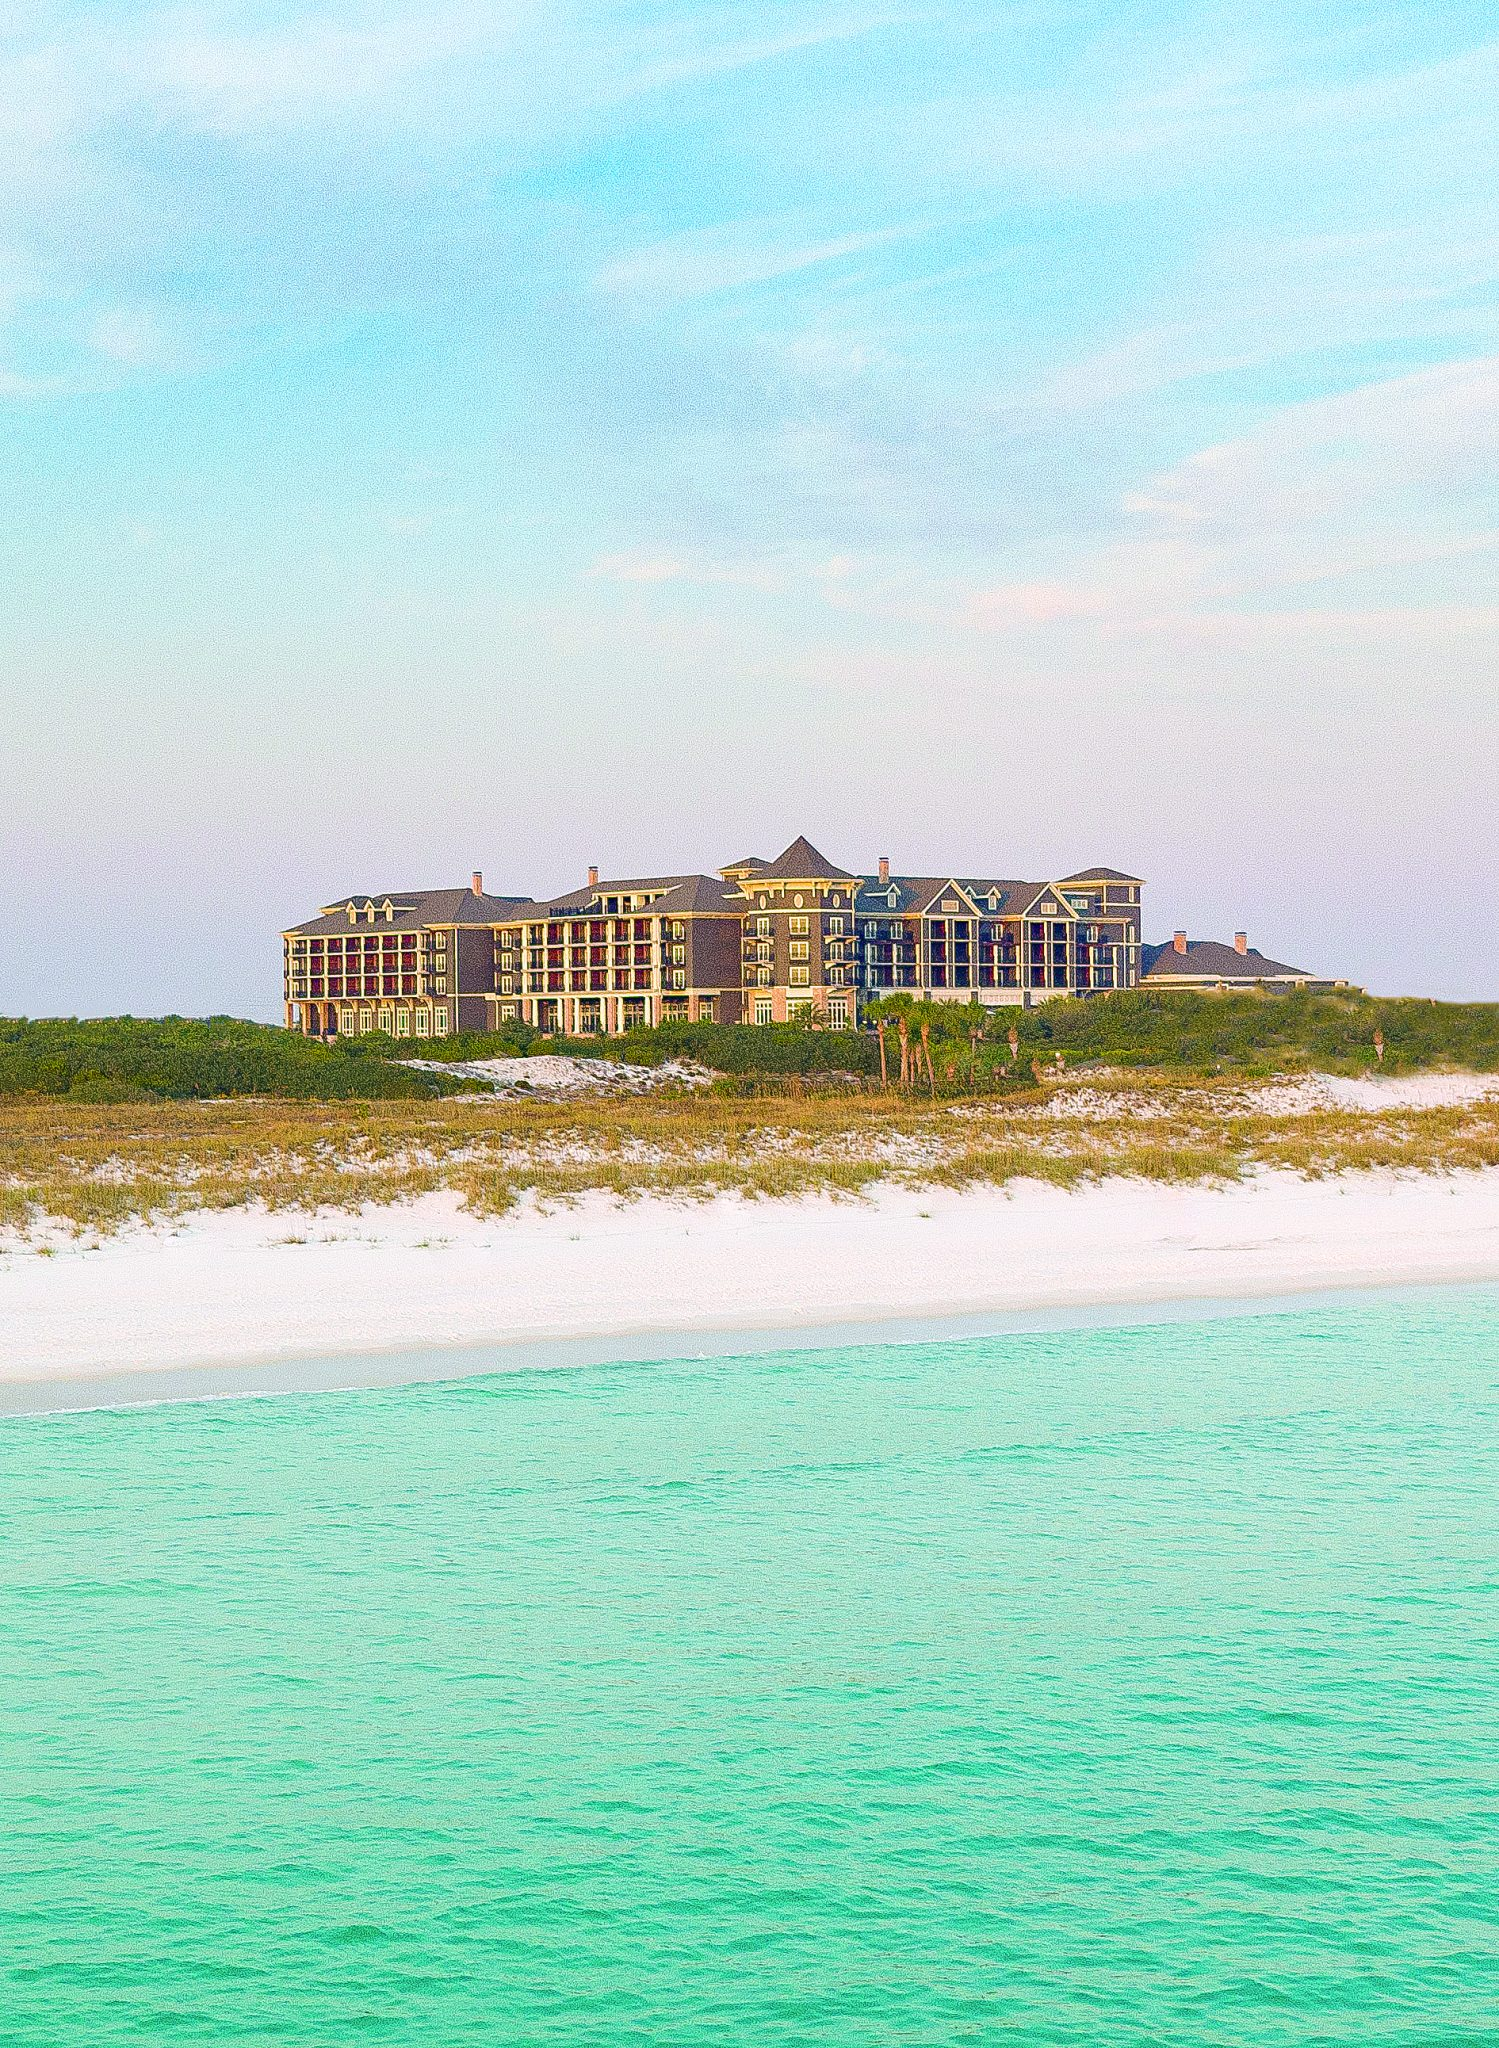 Destin Gets Lucky With New Luxury Resort